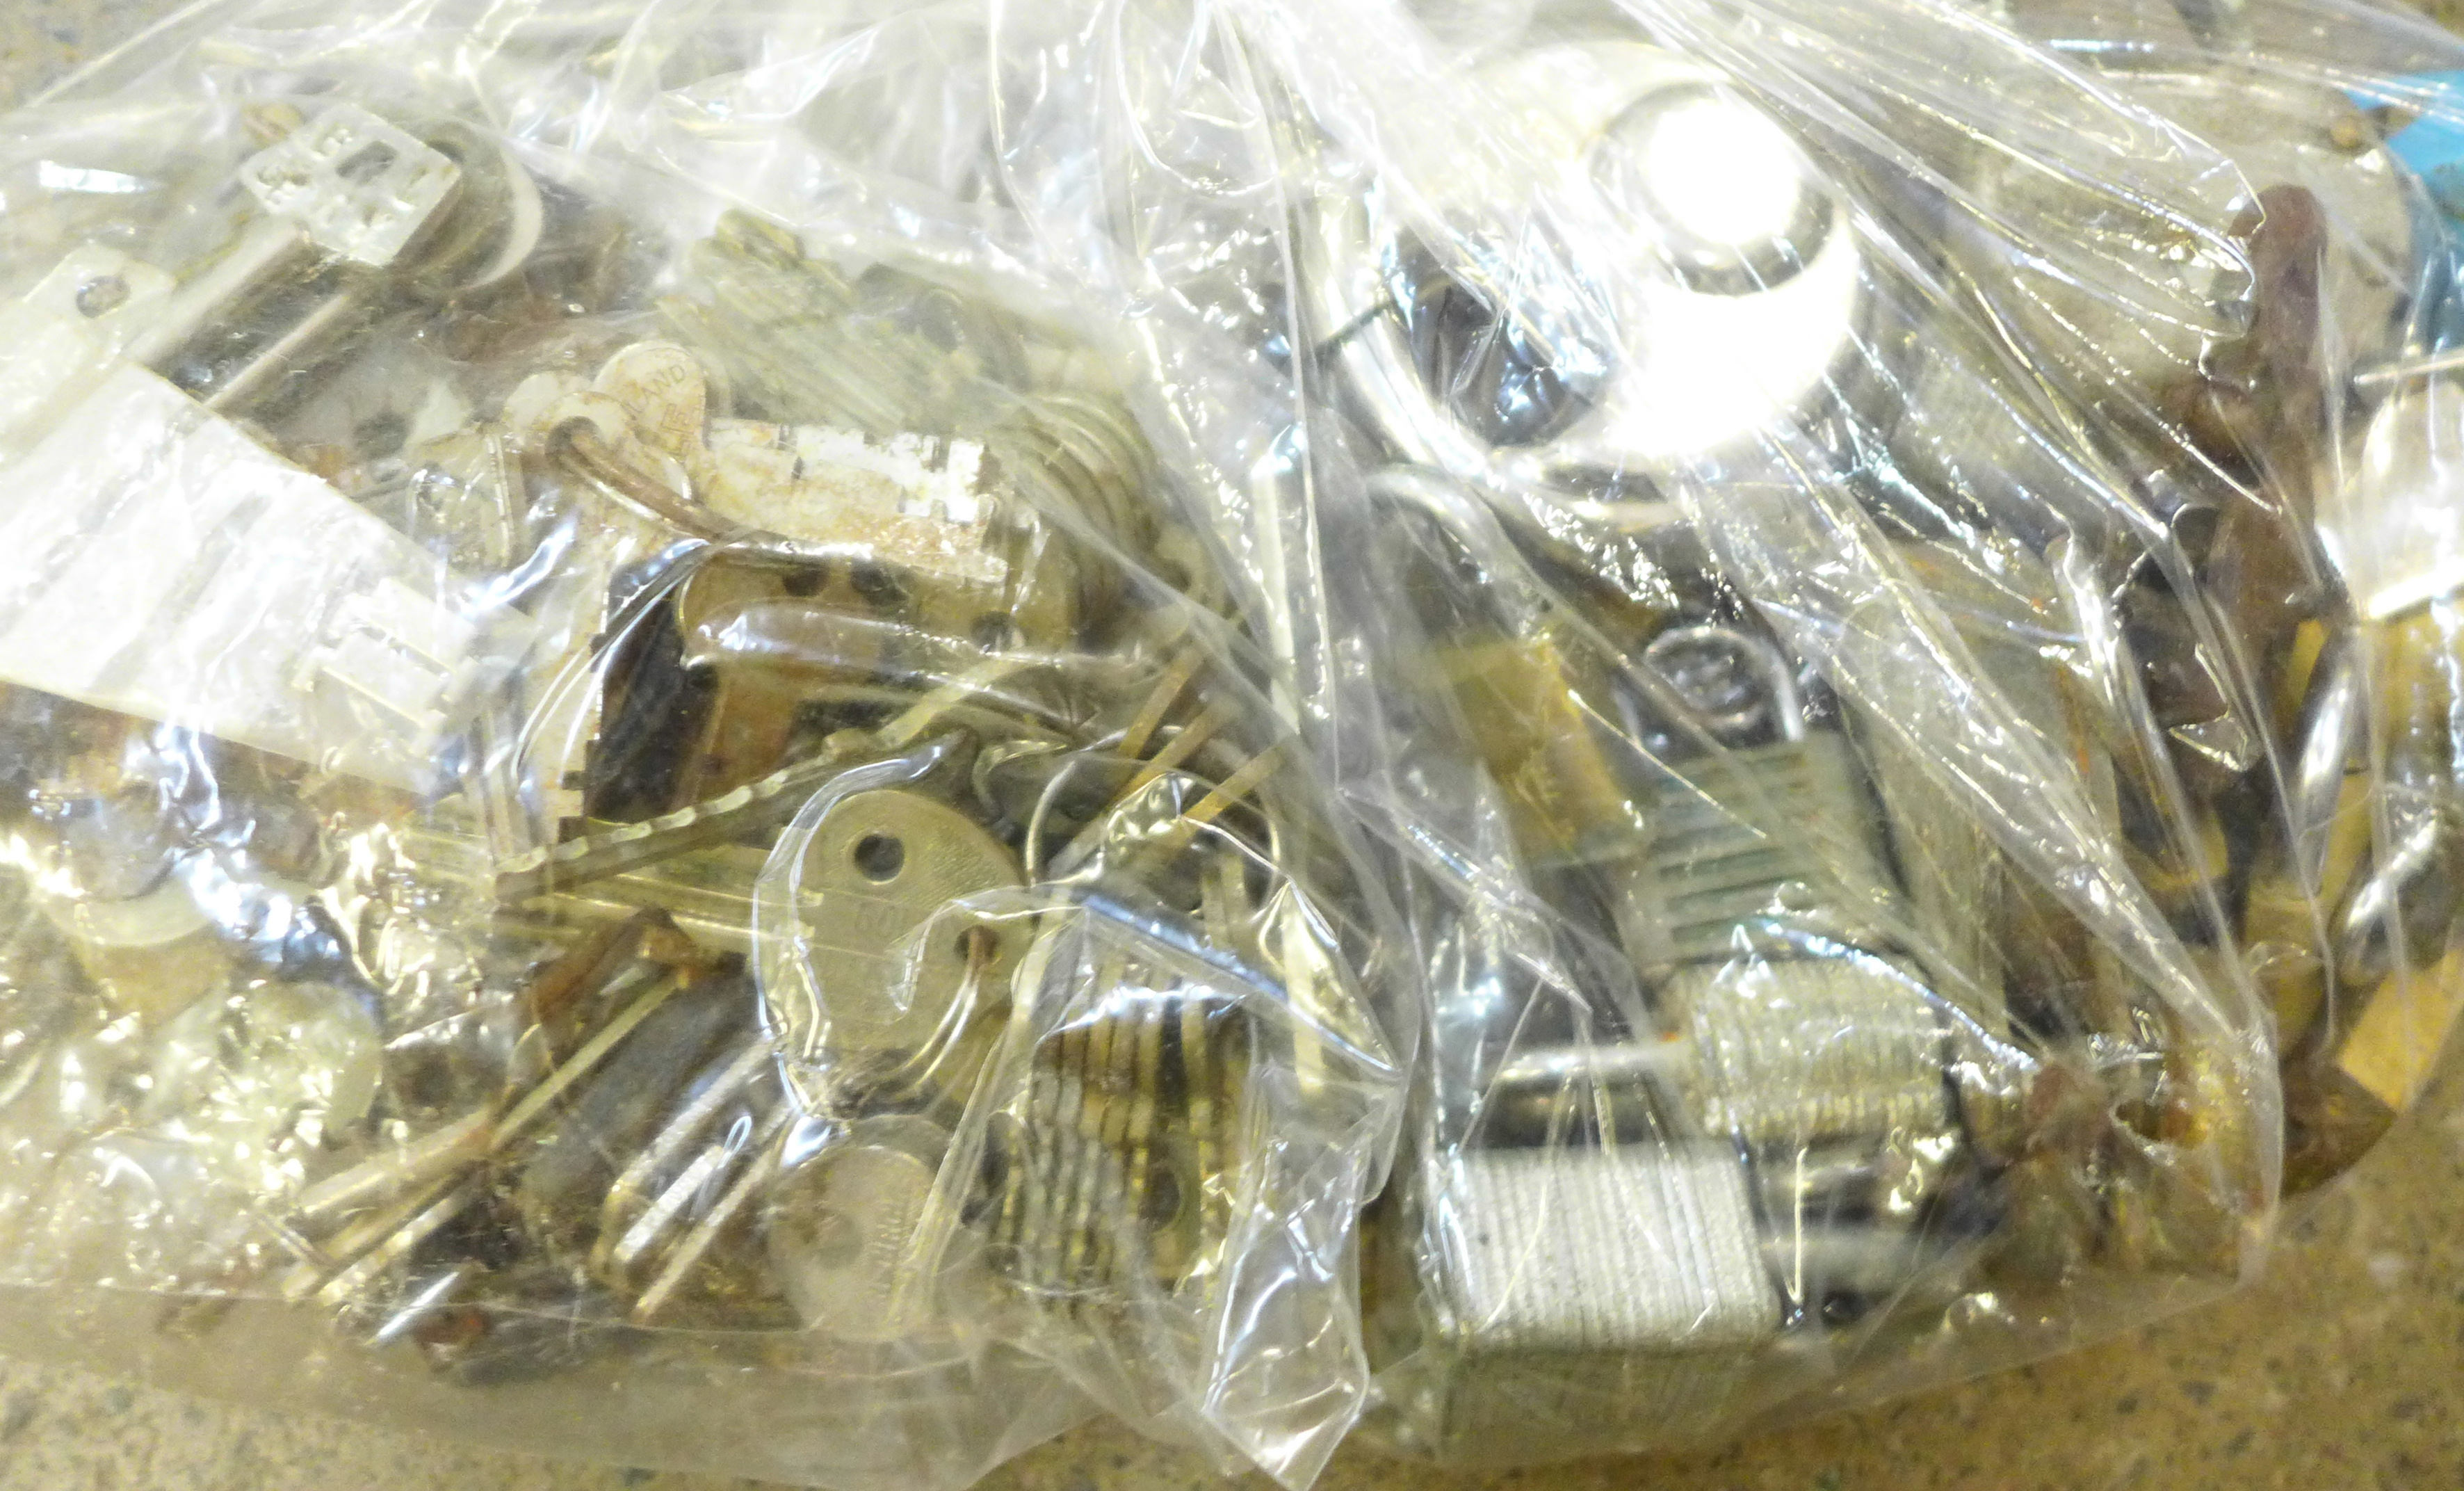 A collection of vintage padlocks and keys